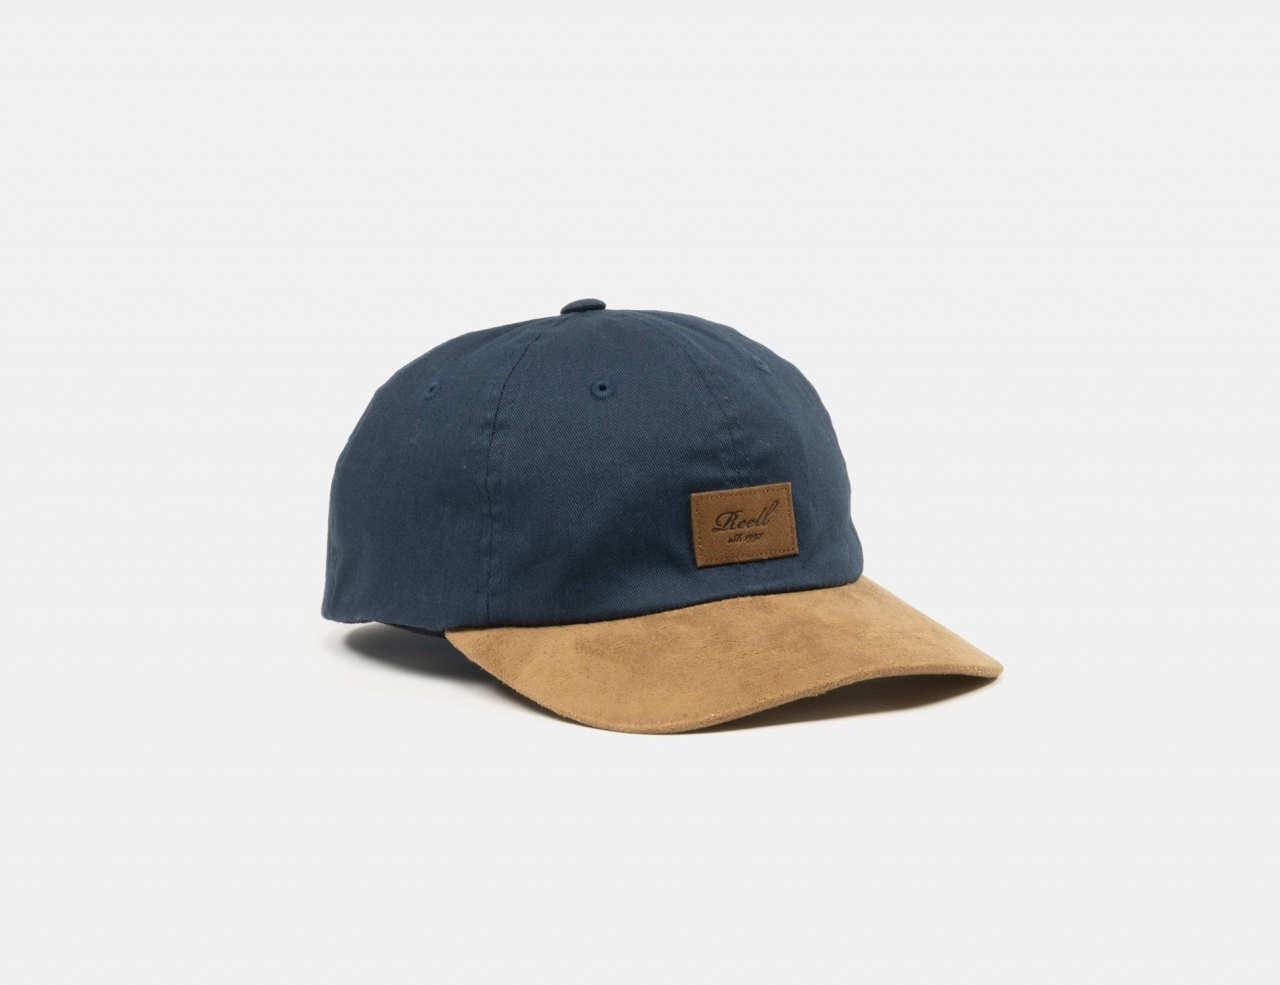 Reell Jeans Curved Suede Dad Cap - Navy